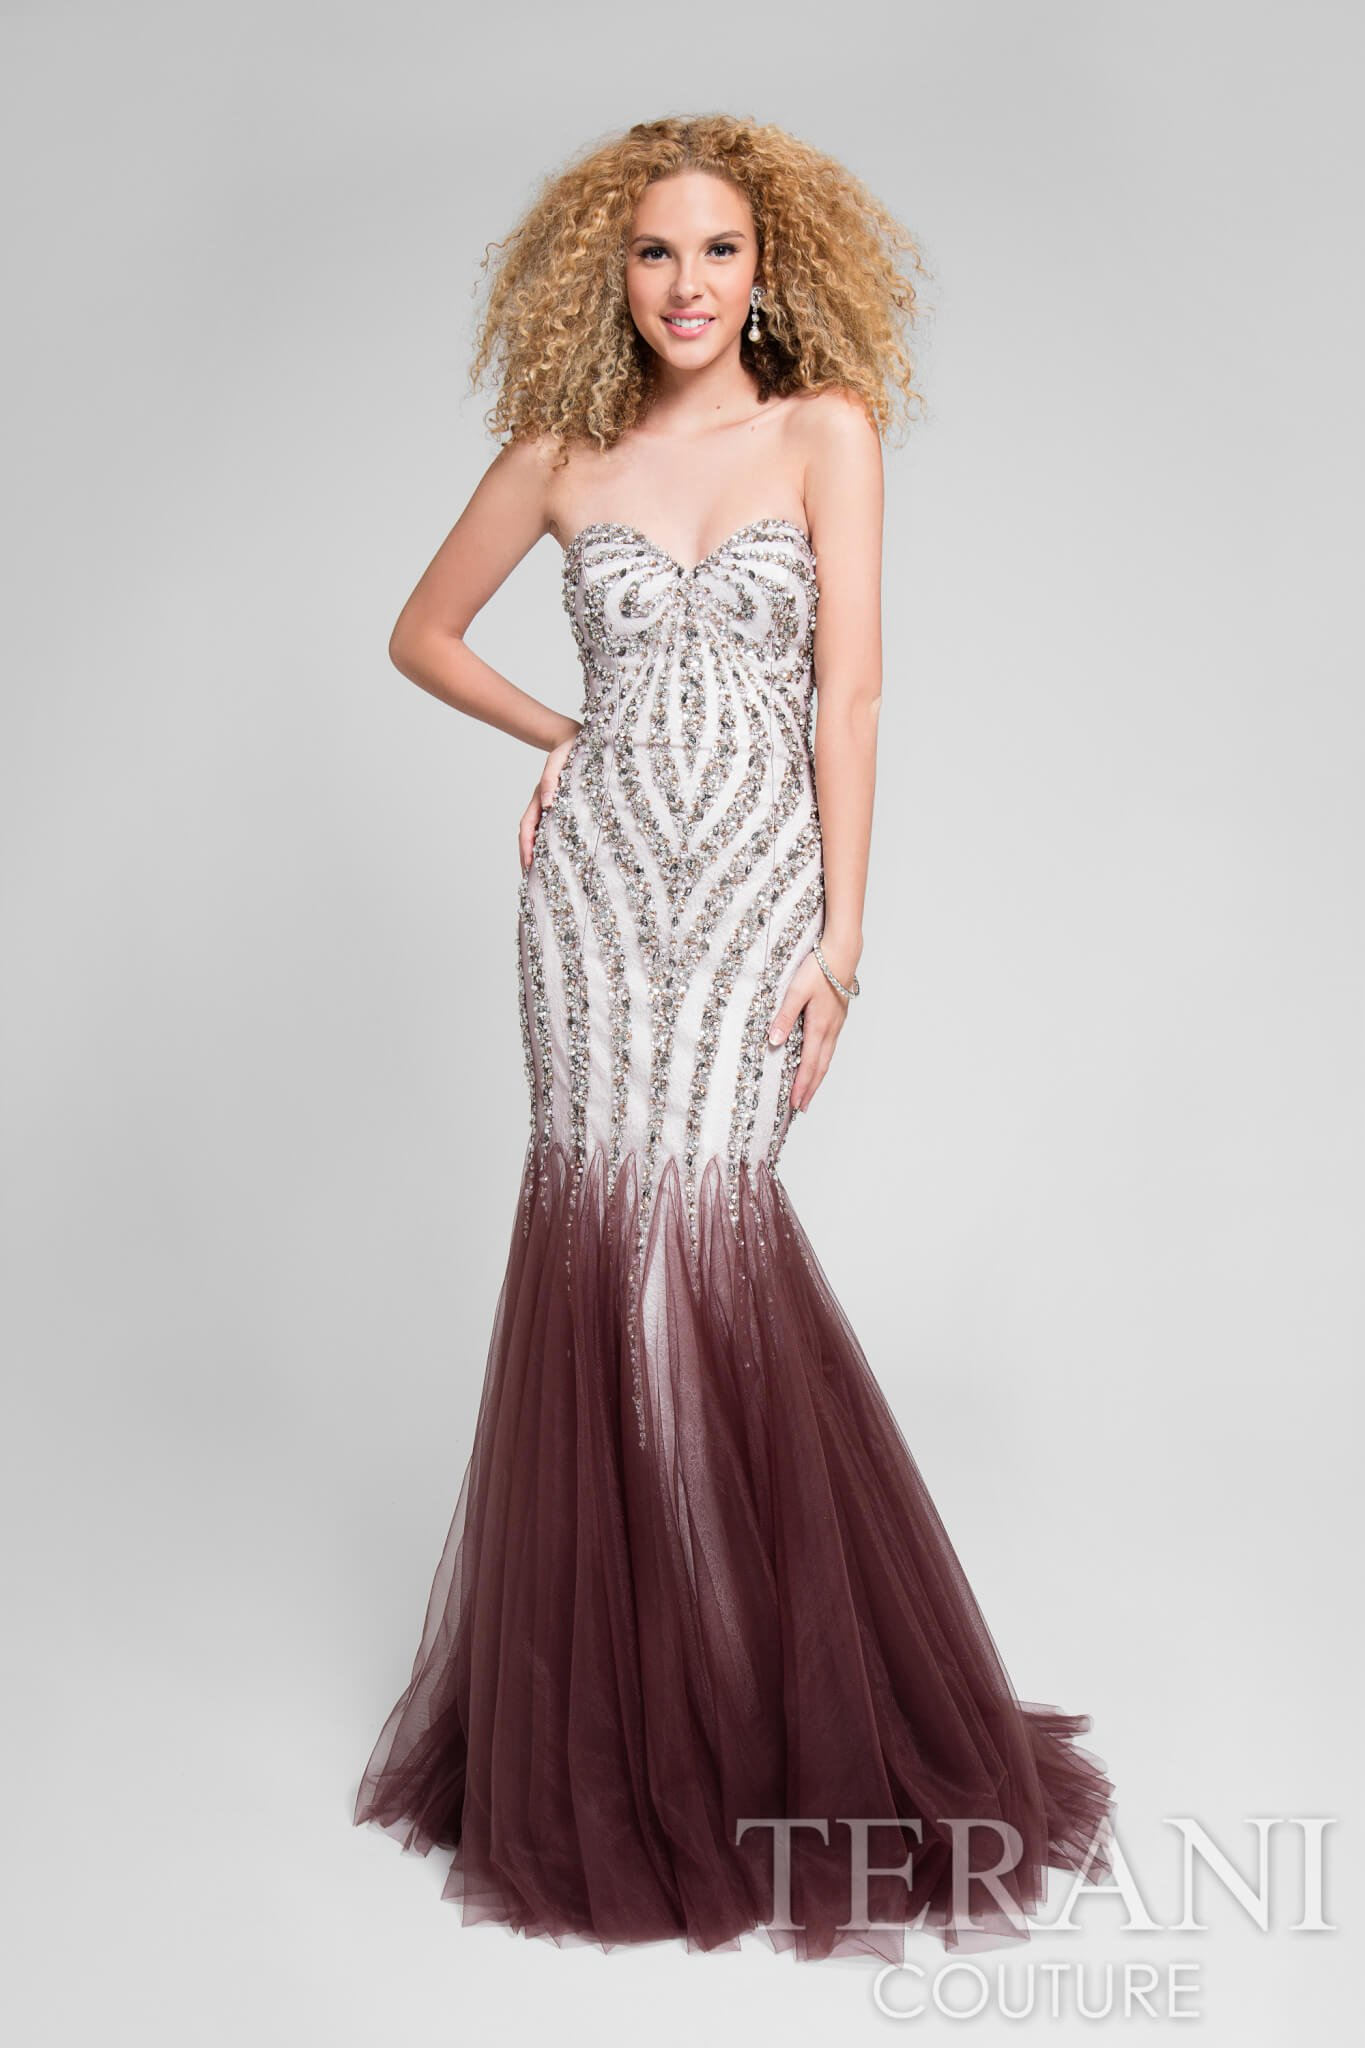 Prom Dresses 2017-2018 Styles & Colors - From The Best